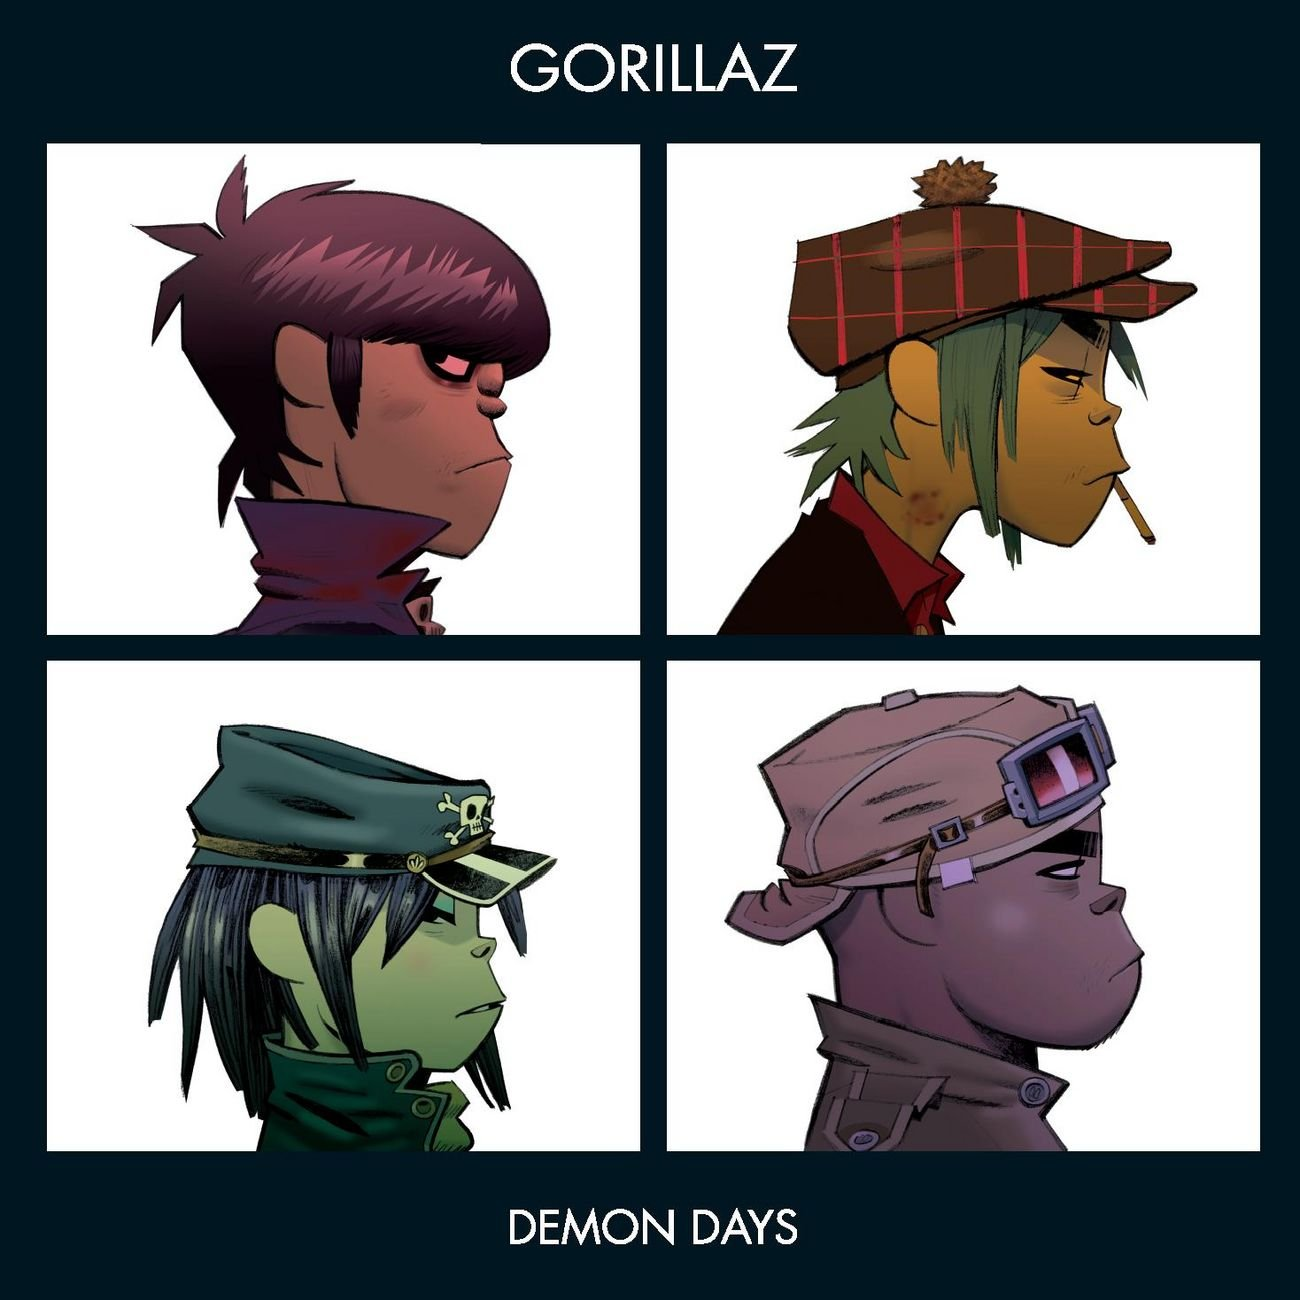 Y Gorillaz Demon Days